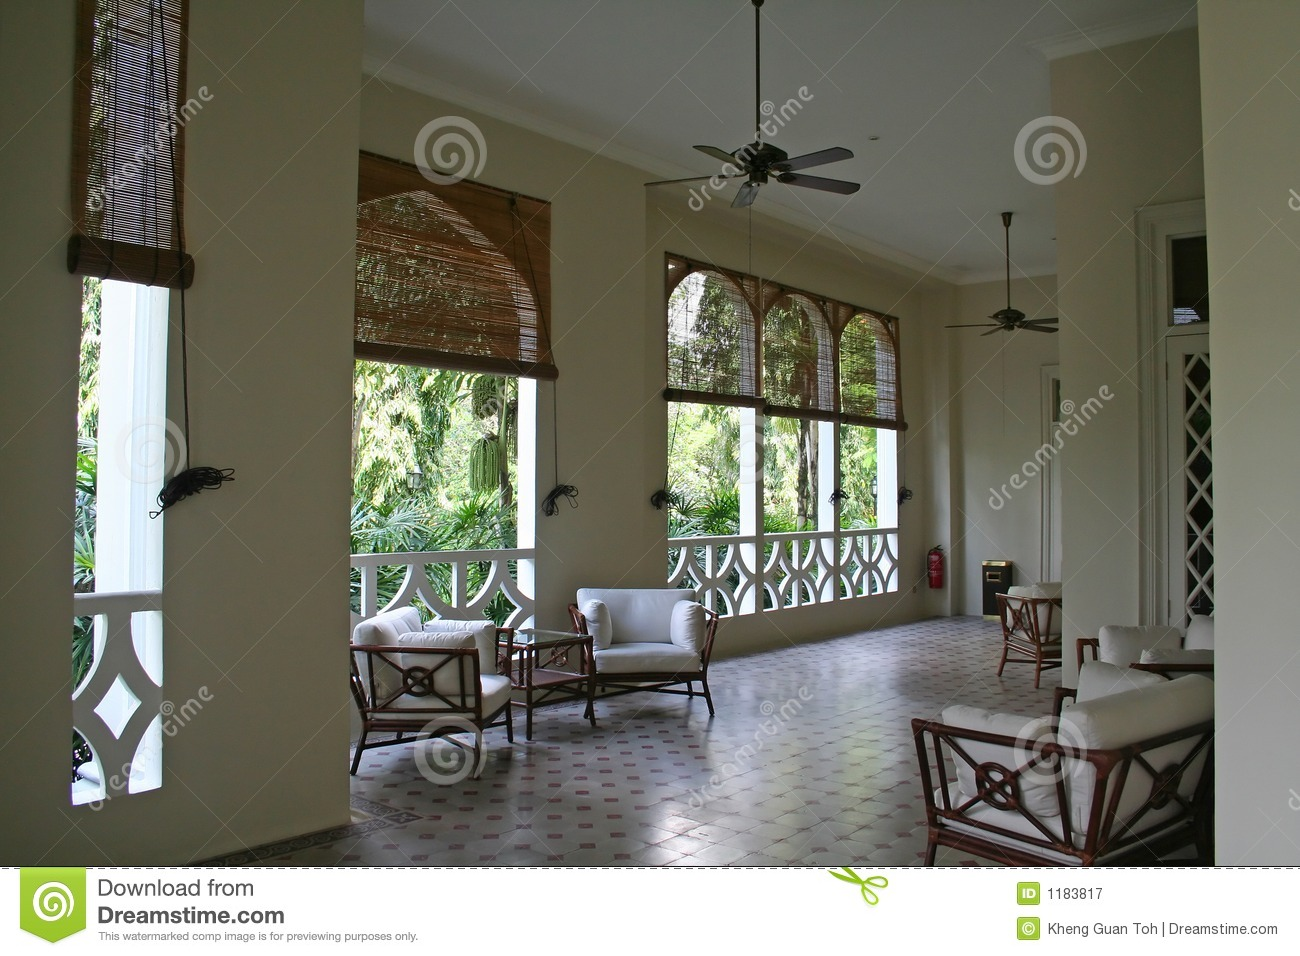 Tropical Colonial Architectur Stock Image  Image 1183817